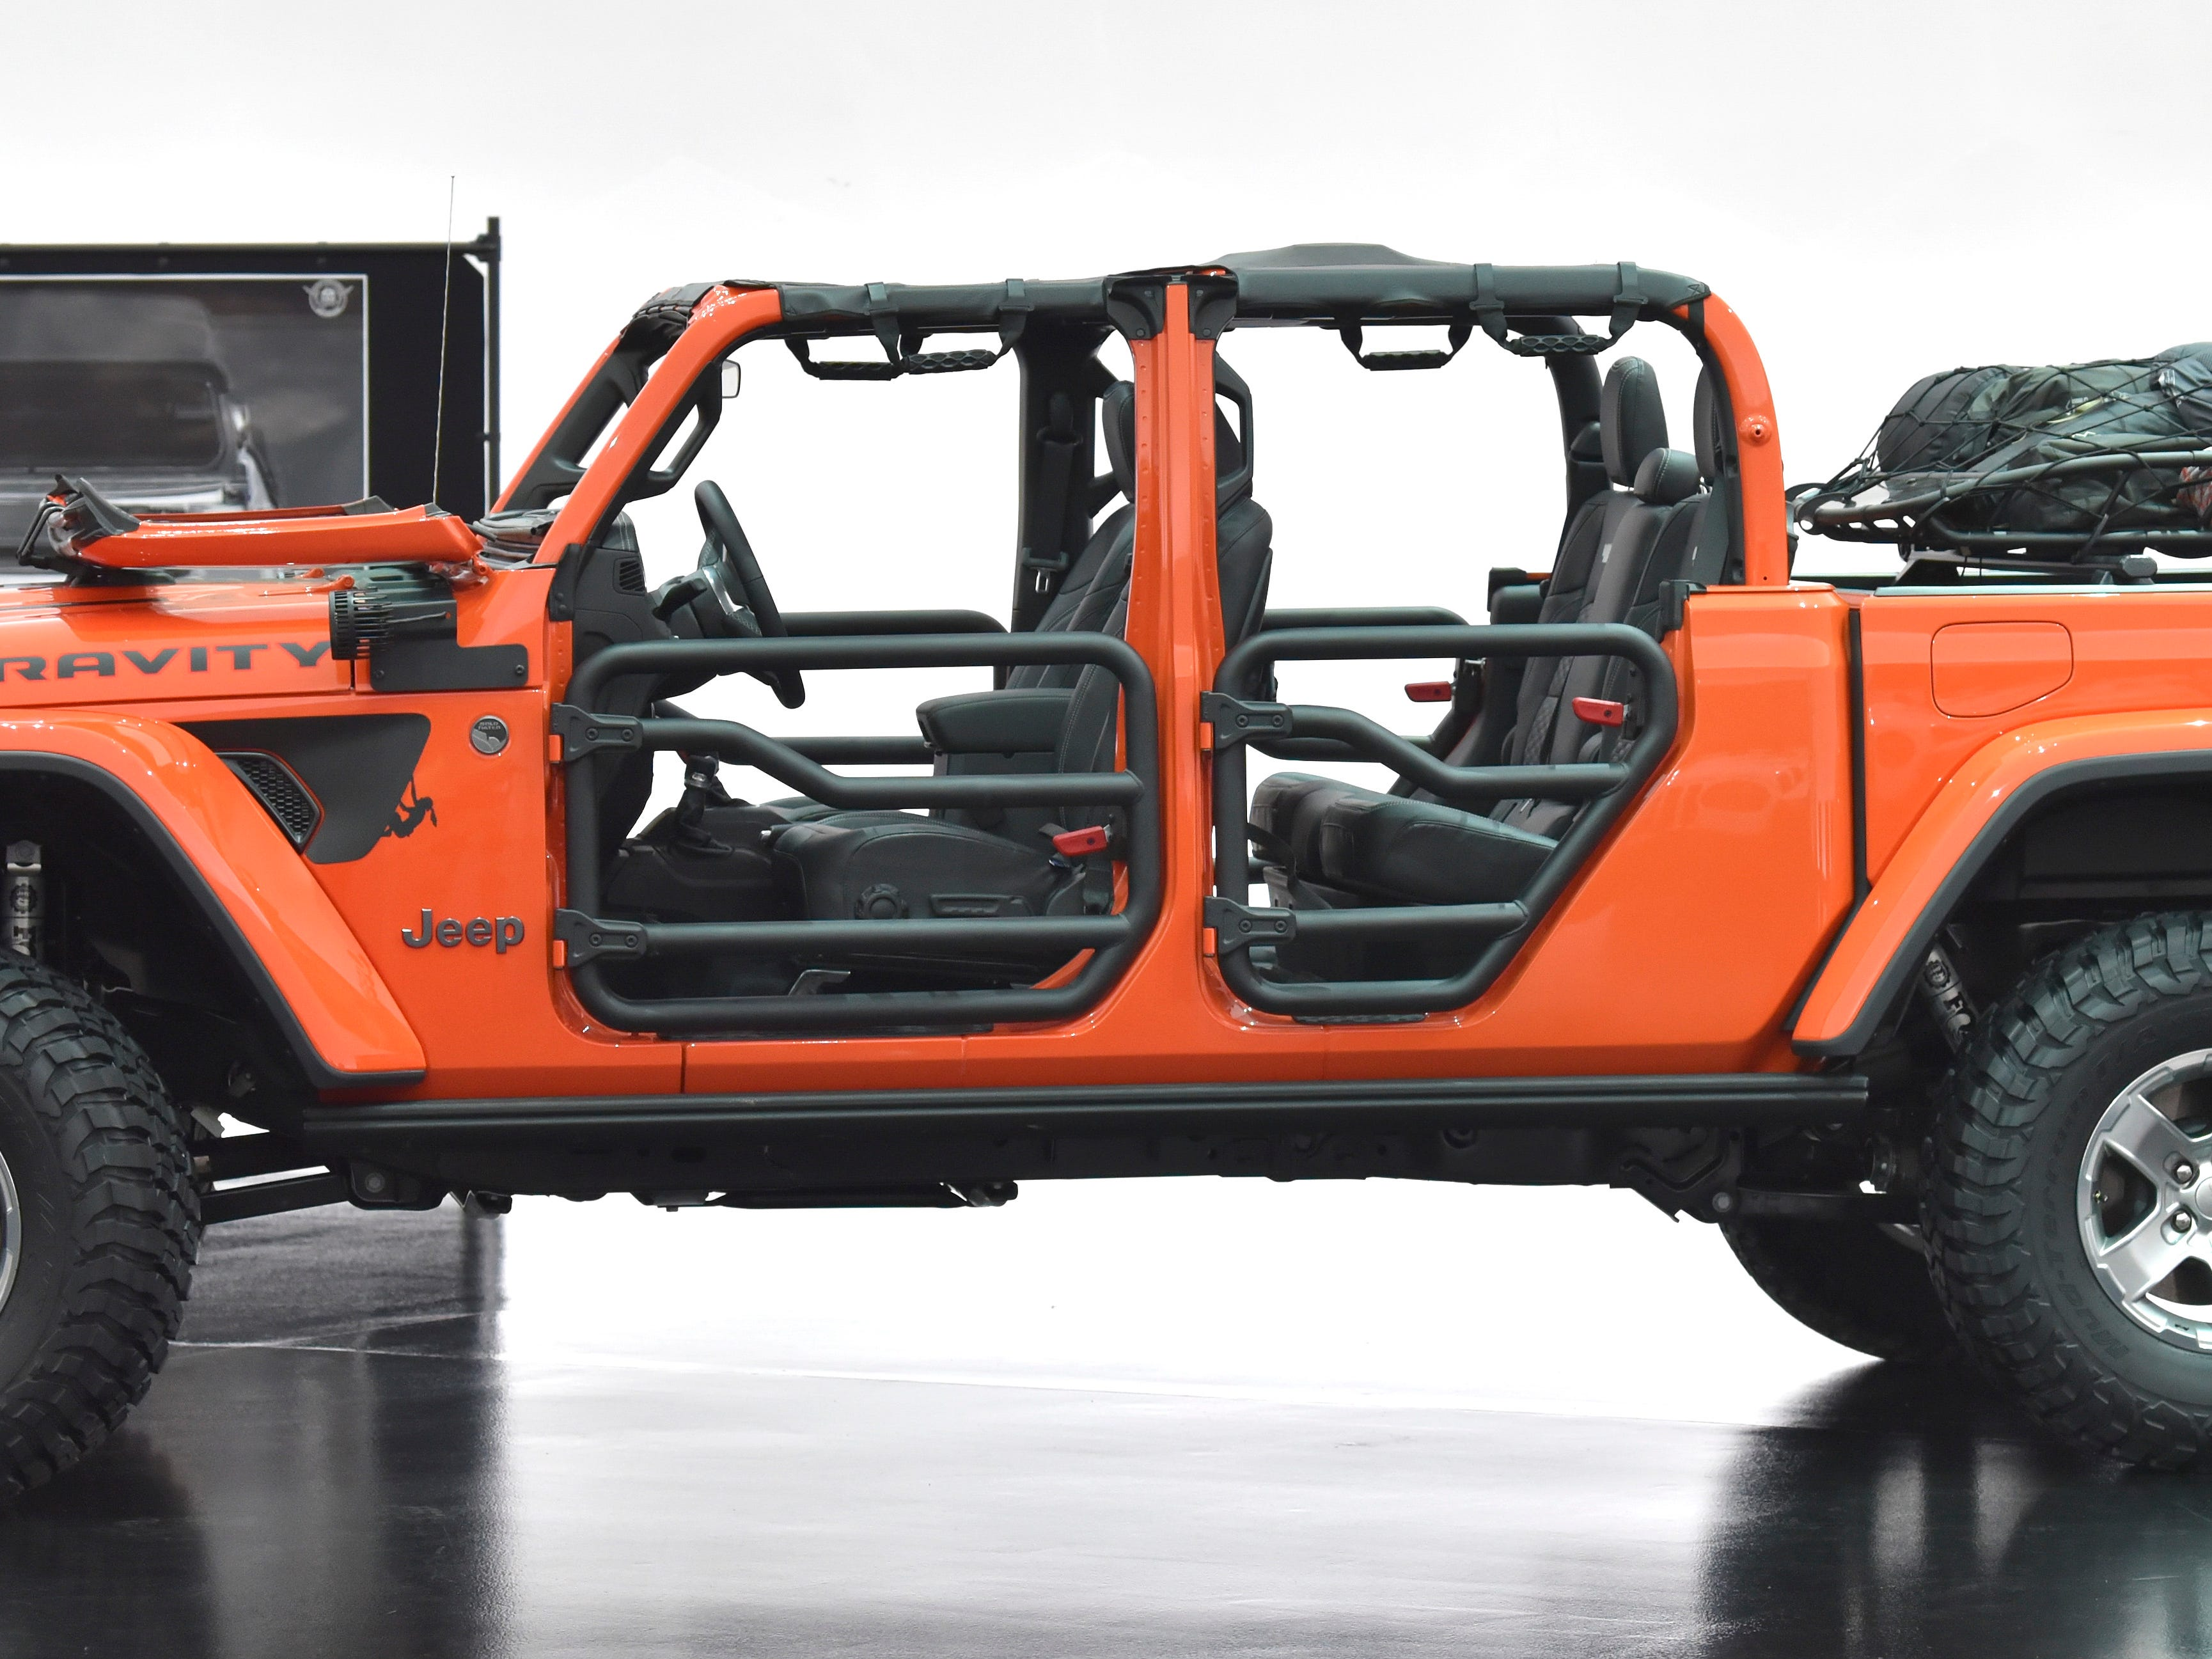 This is the Jeep Gladiator Gravity. This rock-climber-themed concept vehicle is colored in Punk'N Metallic Orange.